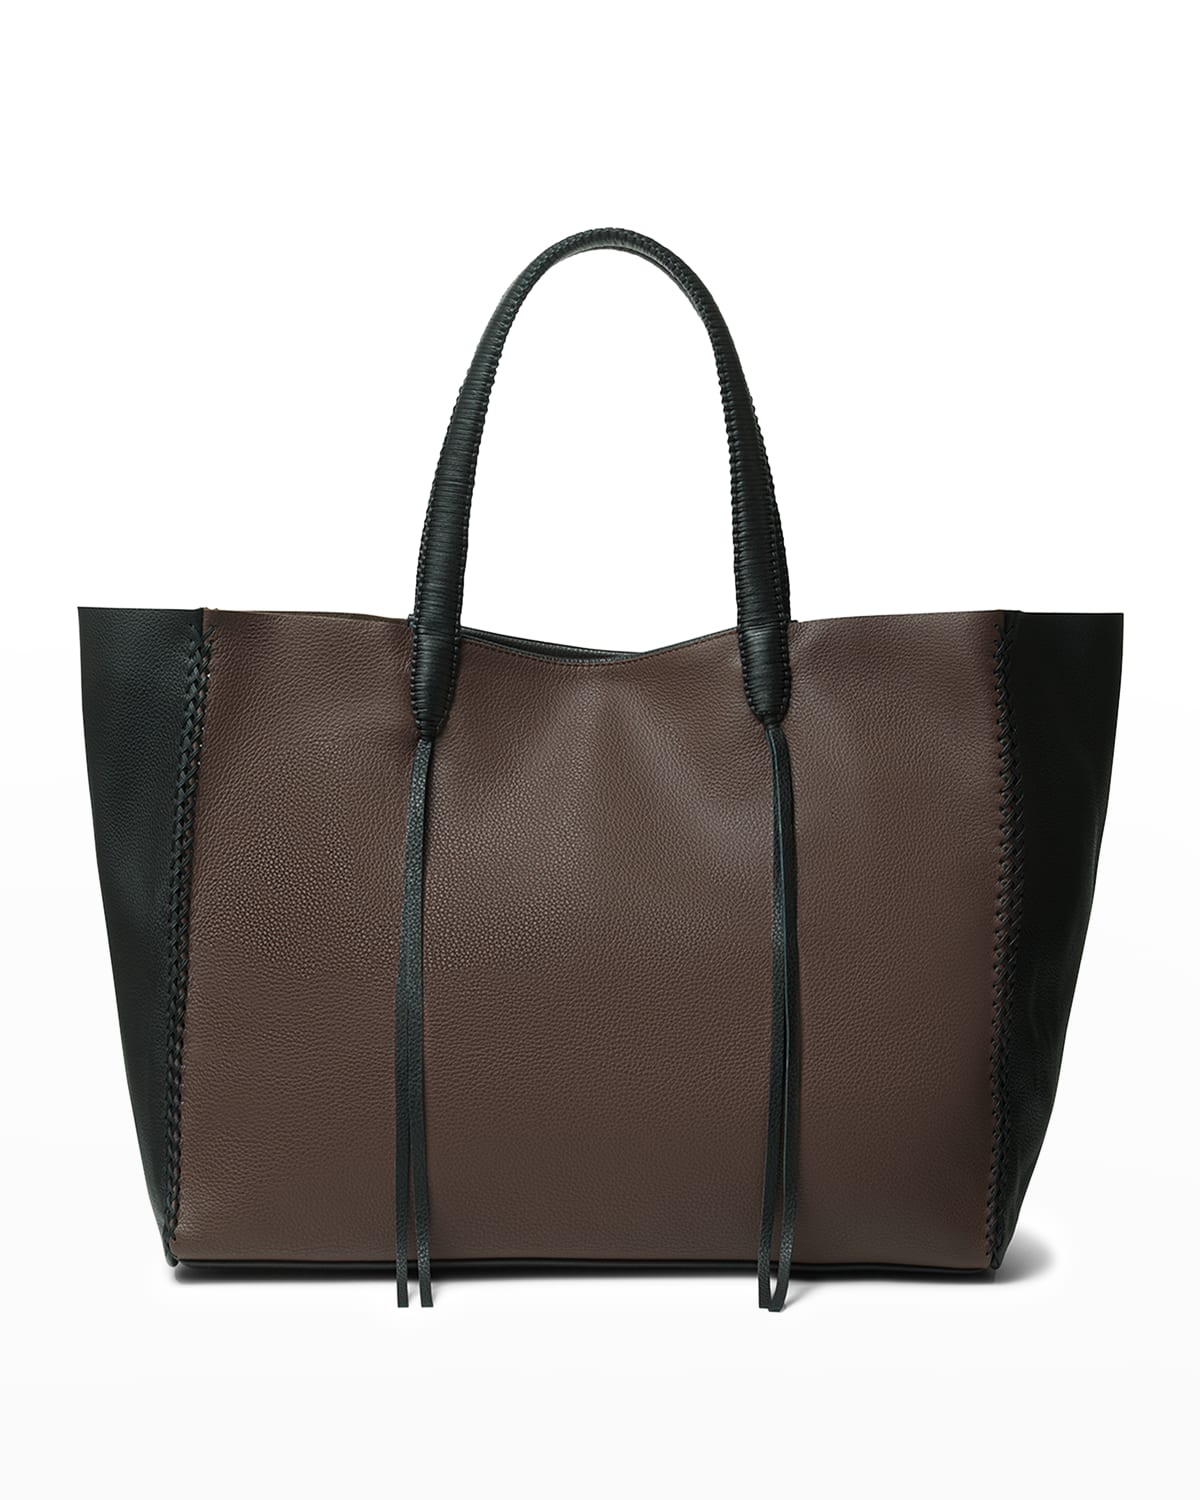 Duo Bicolor Leather Tote Bag